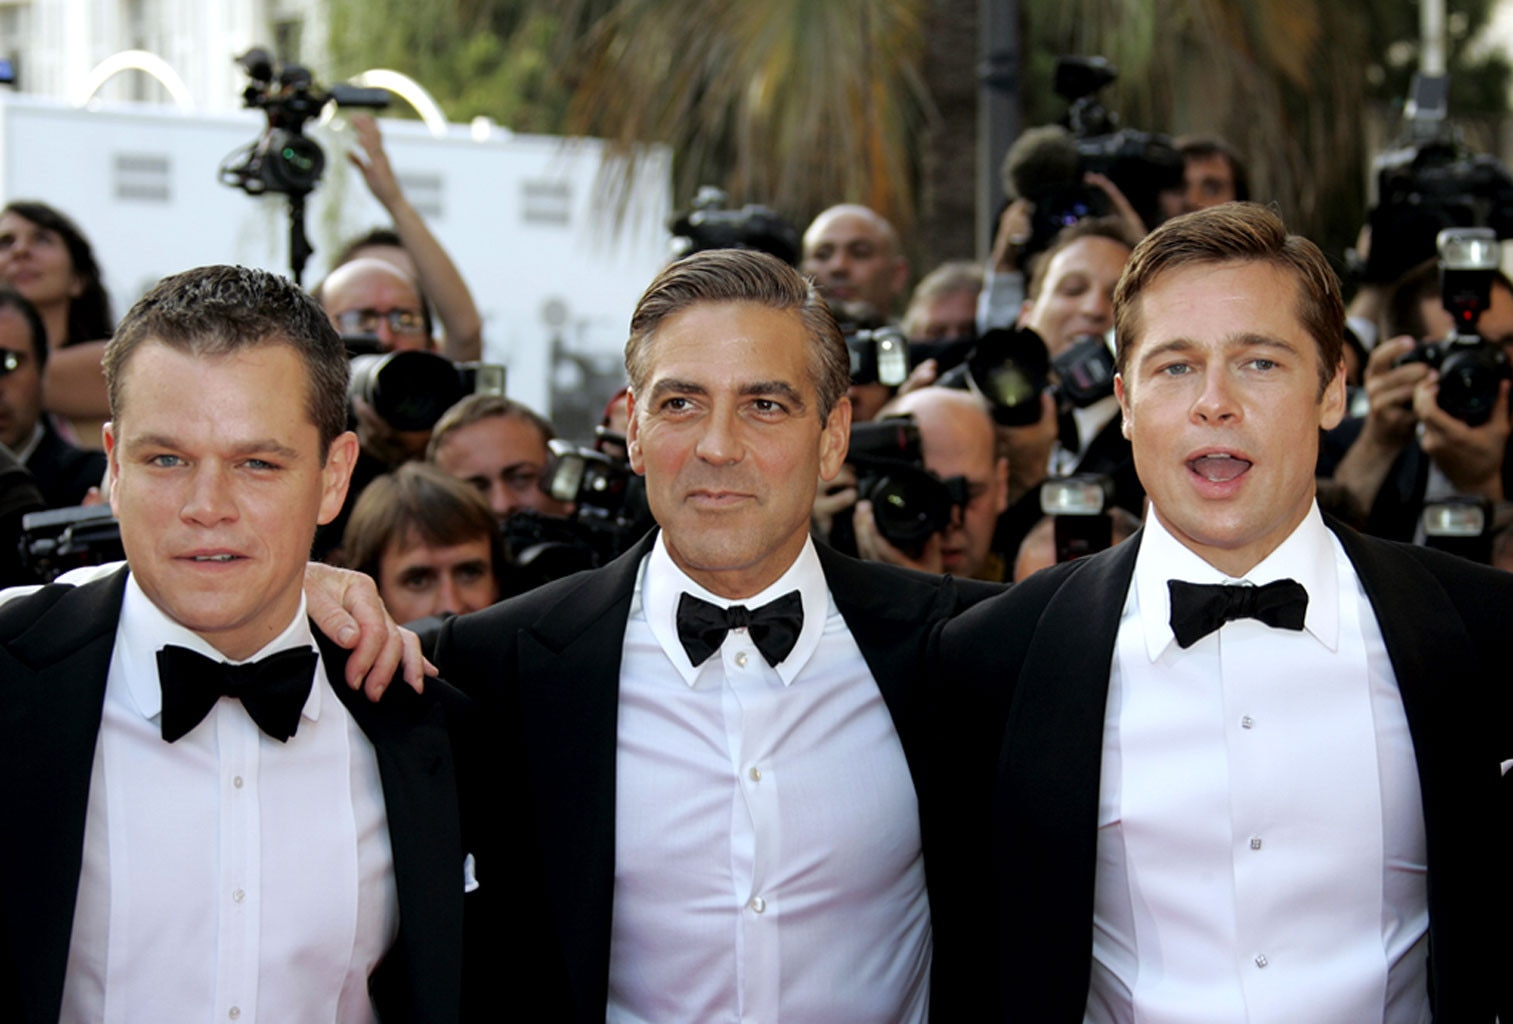 Opening Night of Cannes Was Selfie-Free and More Subdued